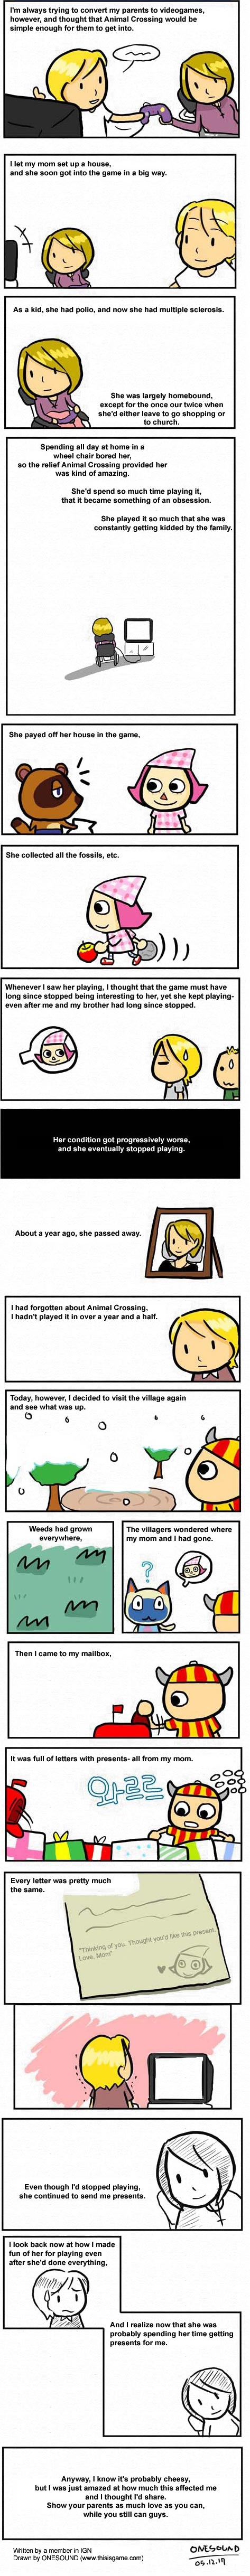 A tear jerking story about Animal Crossing